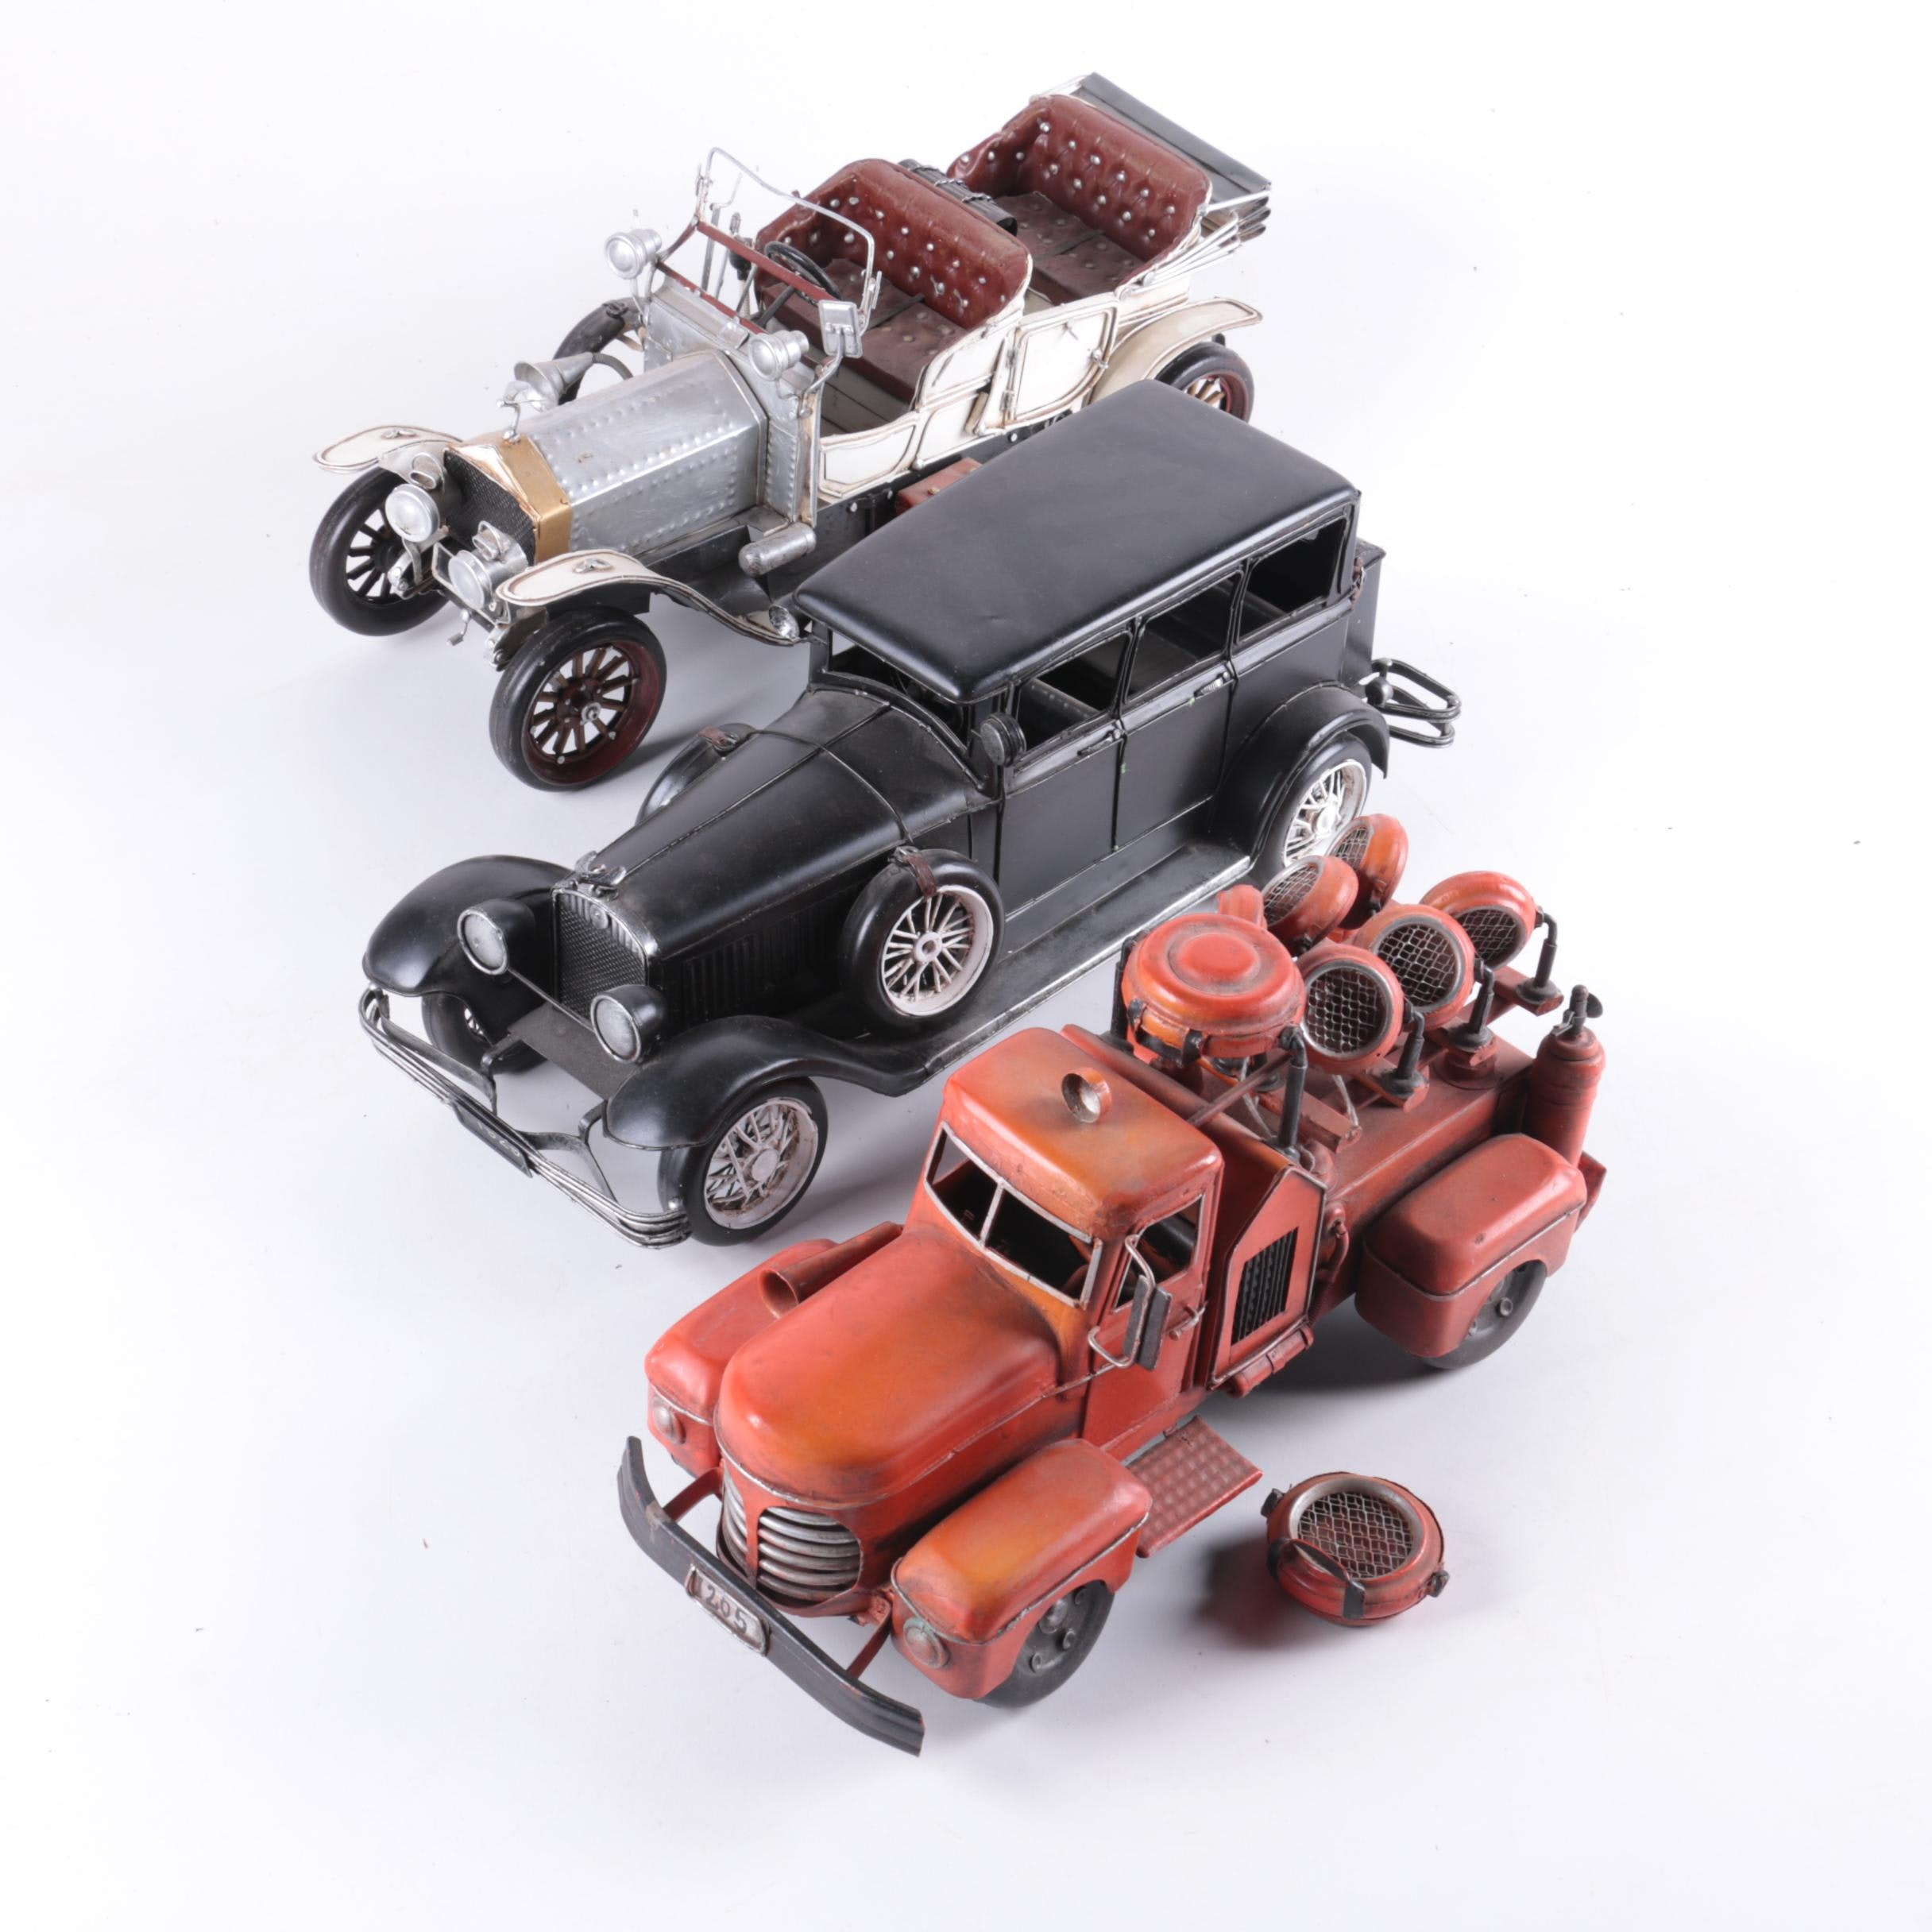 Rolls-Royce Die-Cast Cars